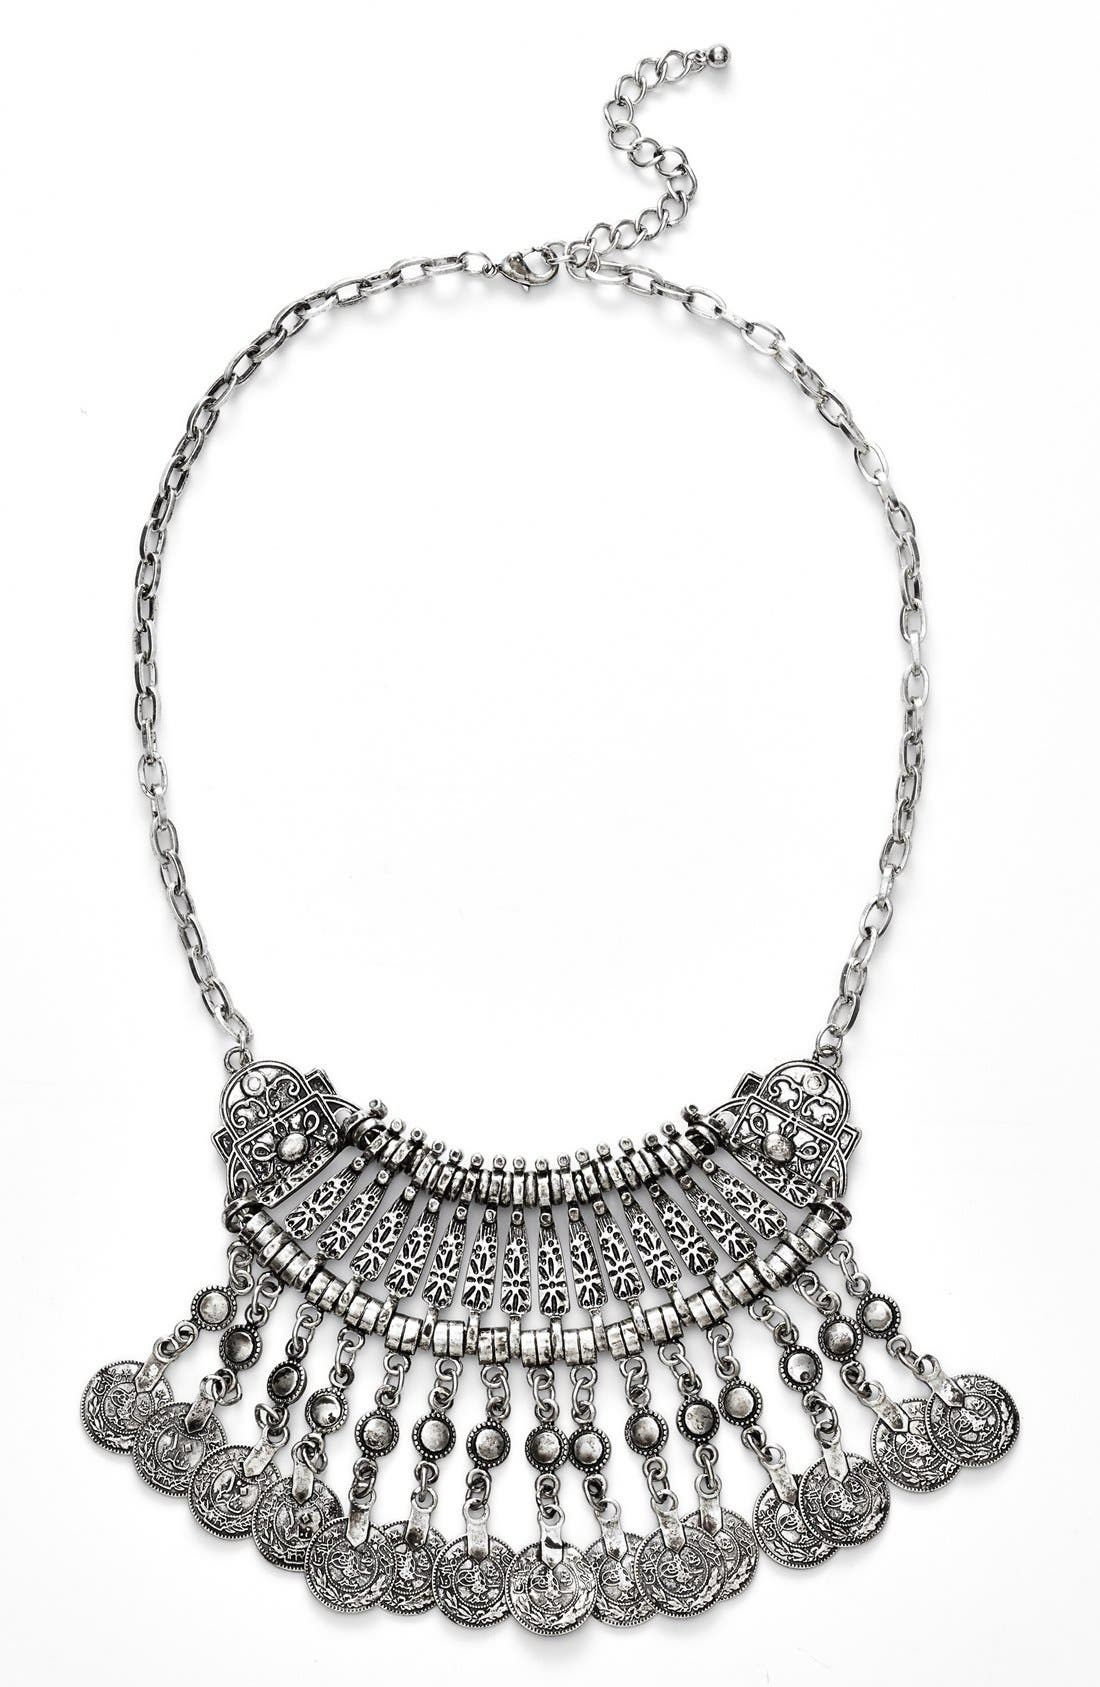 Main Image - BP. Etched Coin Statement Necklace